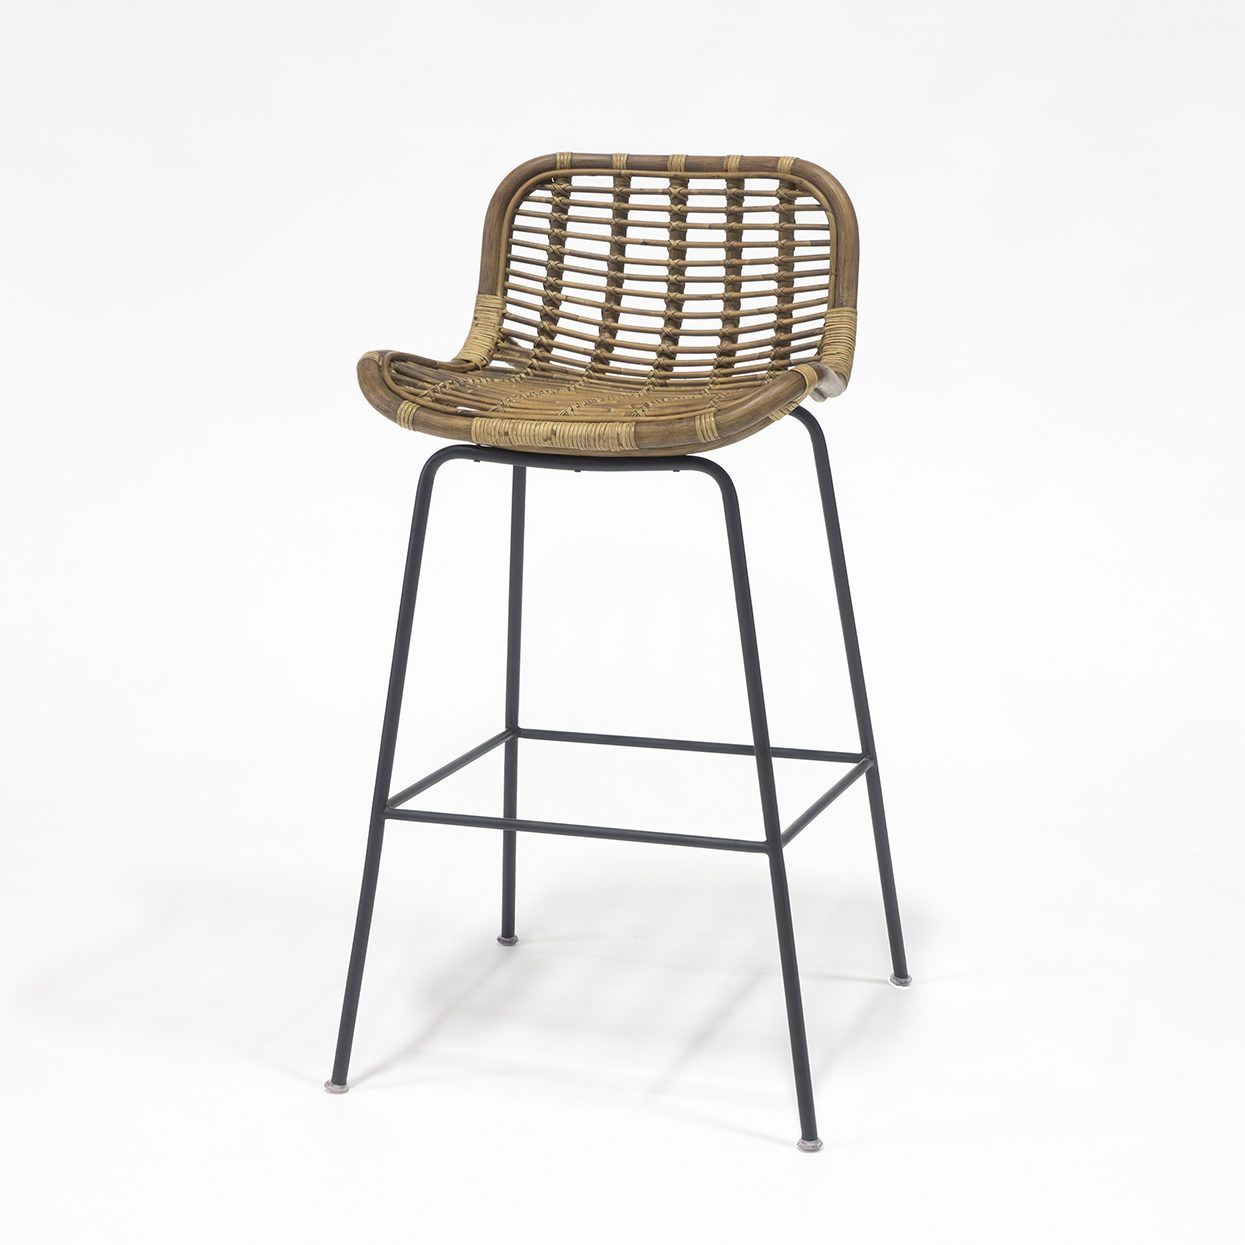 Beau Our Sydney Rattan Counter Stool From Palecek Features Modern Lines And A  Woven Natural Wicker Seat And Back. Adds A Touch Of Coastal Style To Any  Decor.